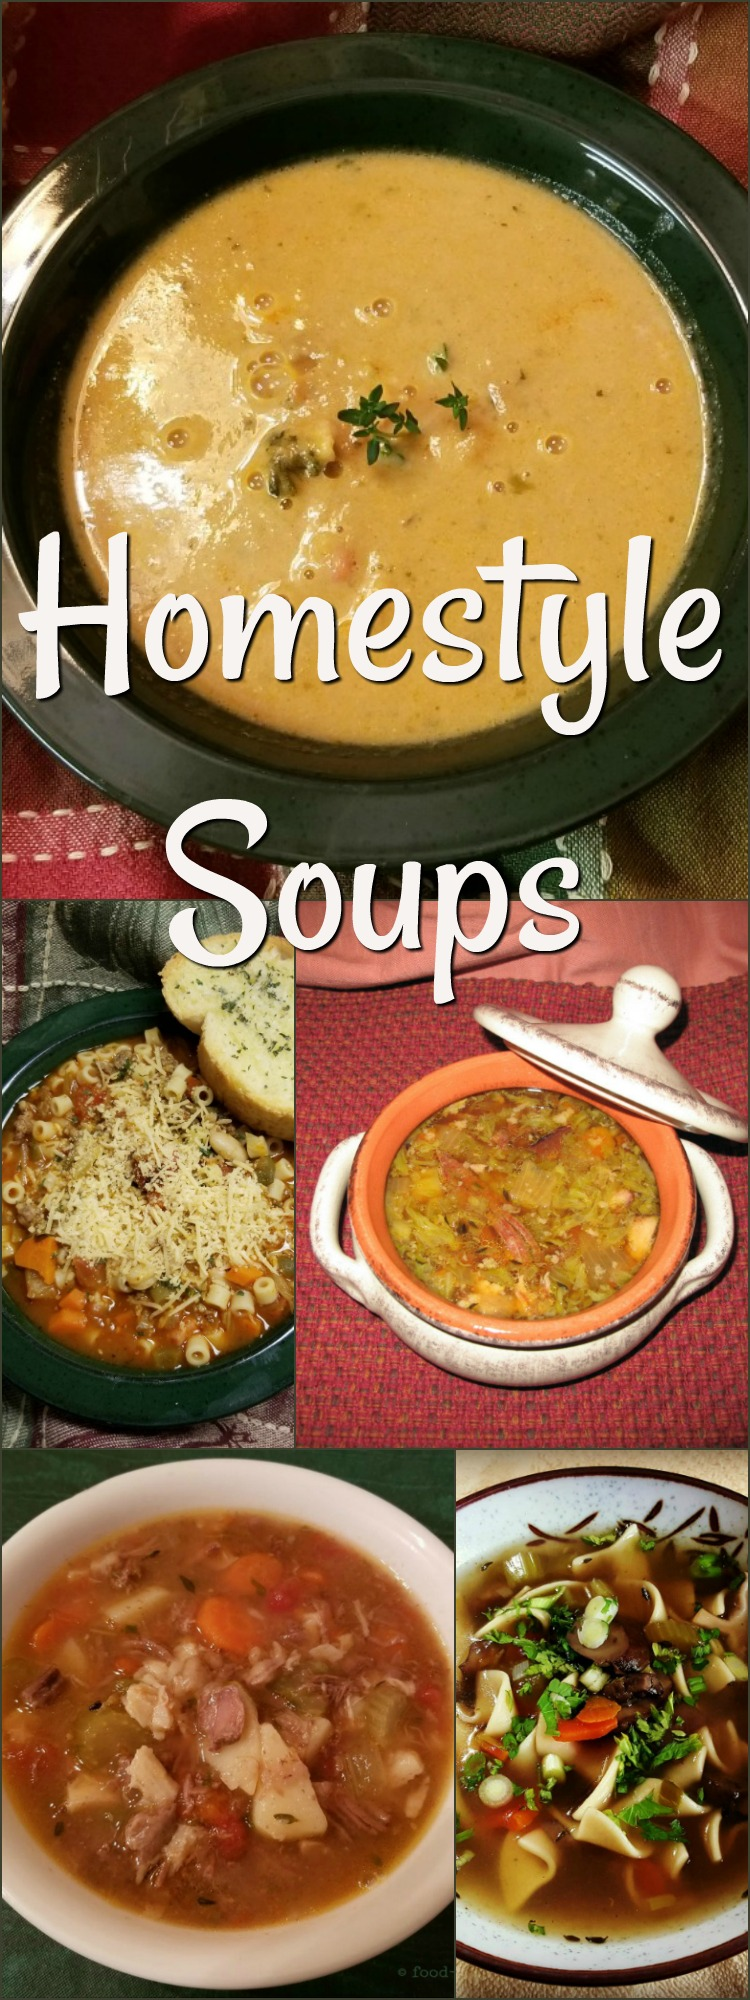 Homestyle Soup Recipes! Soups make nutritious, healthy and inexpensive meals all by themselves or as part of a more complete menu.